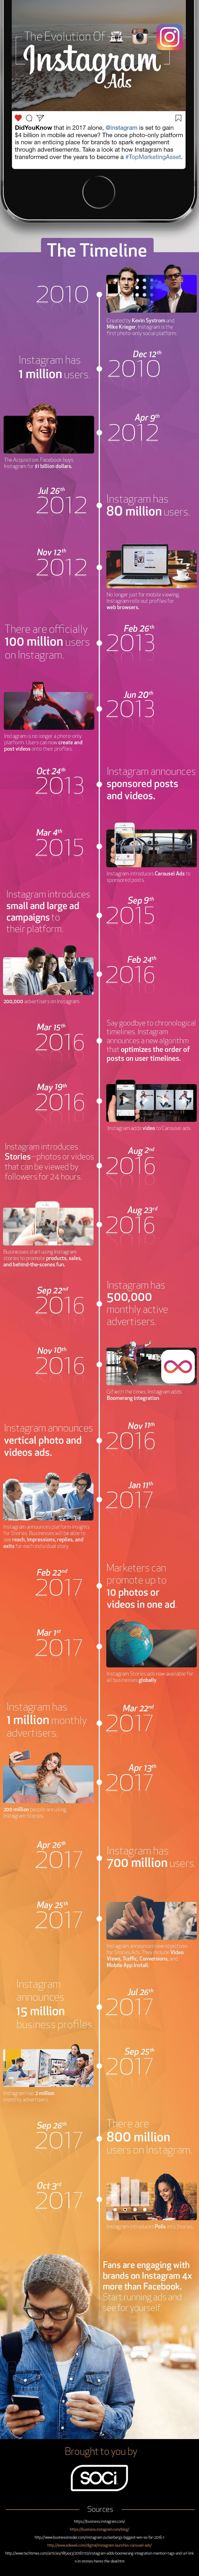 The Evolution of Instagram Ads - #Infographic